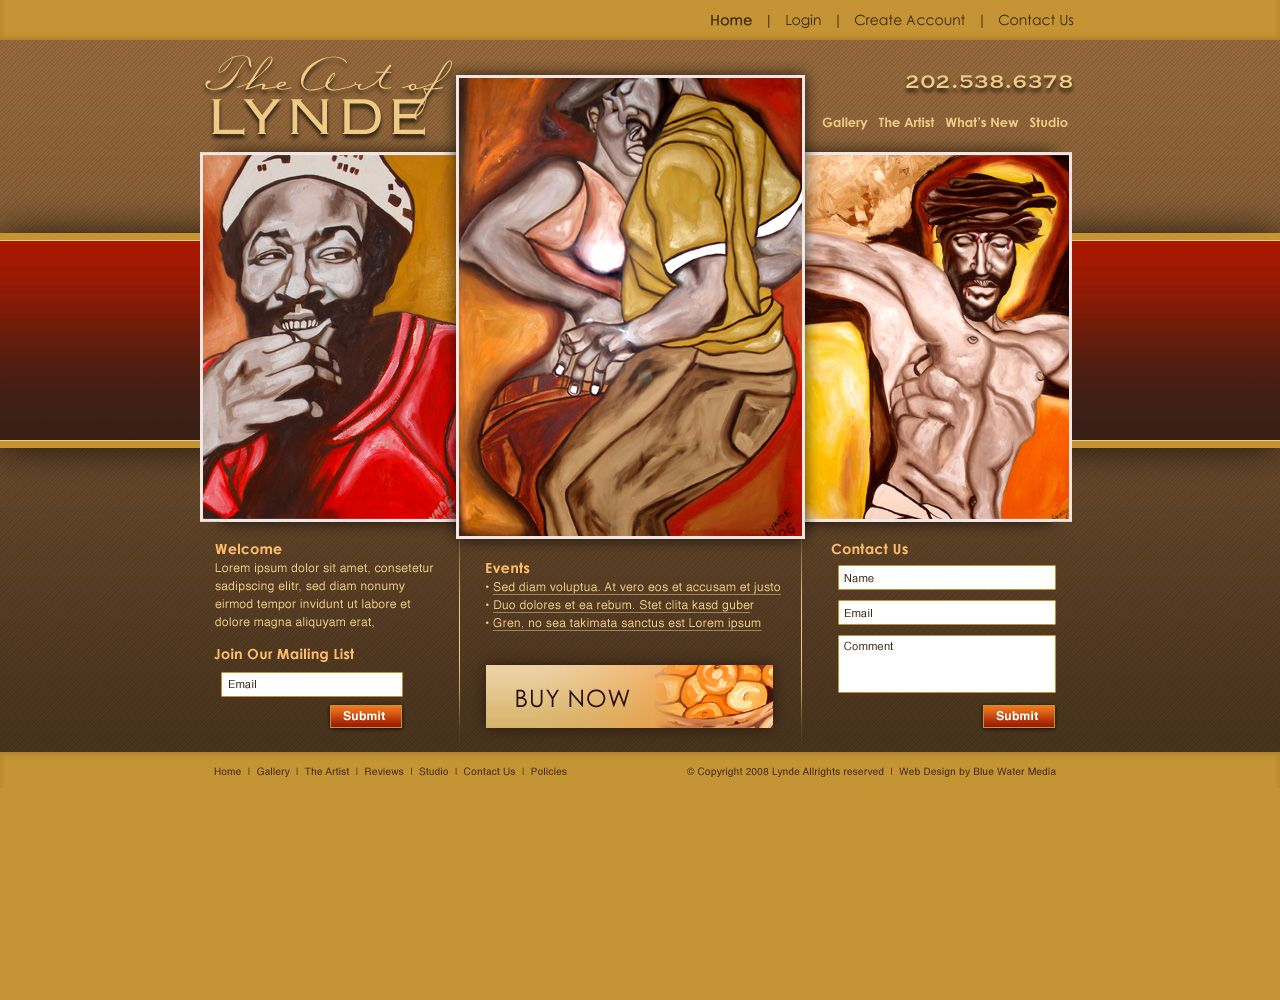 The Redesigned Website Created By Blue Water Media S E Commerce Web Design Team Features Original African Ameri African American Art American Painting Artist